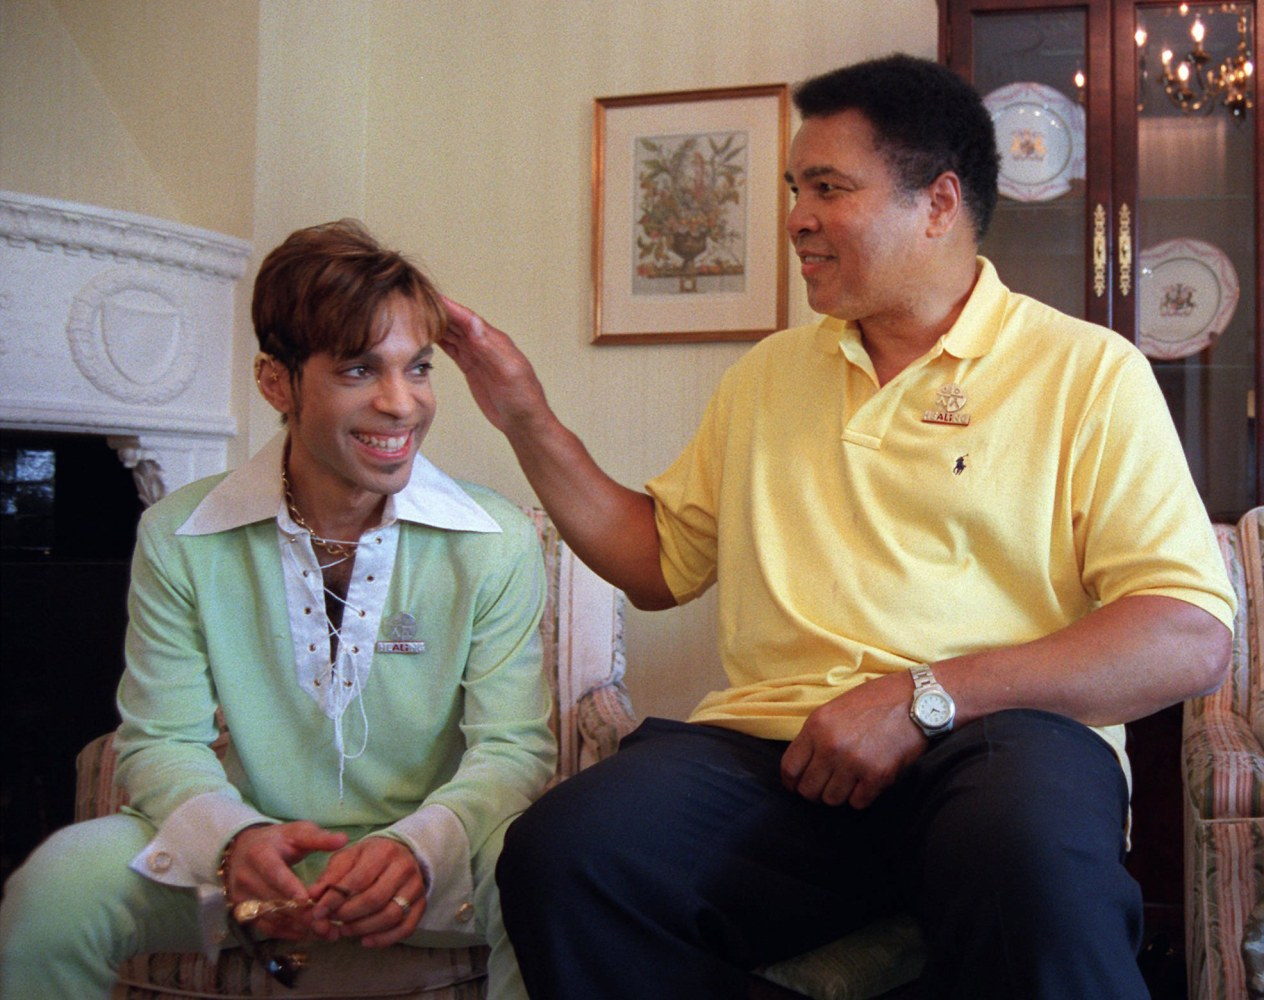 essay the greatest losses what prince and muhammad ali shared image muhammad ali embraces prince during a meeting in 1997